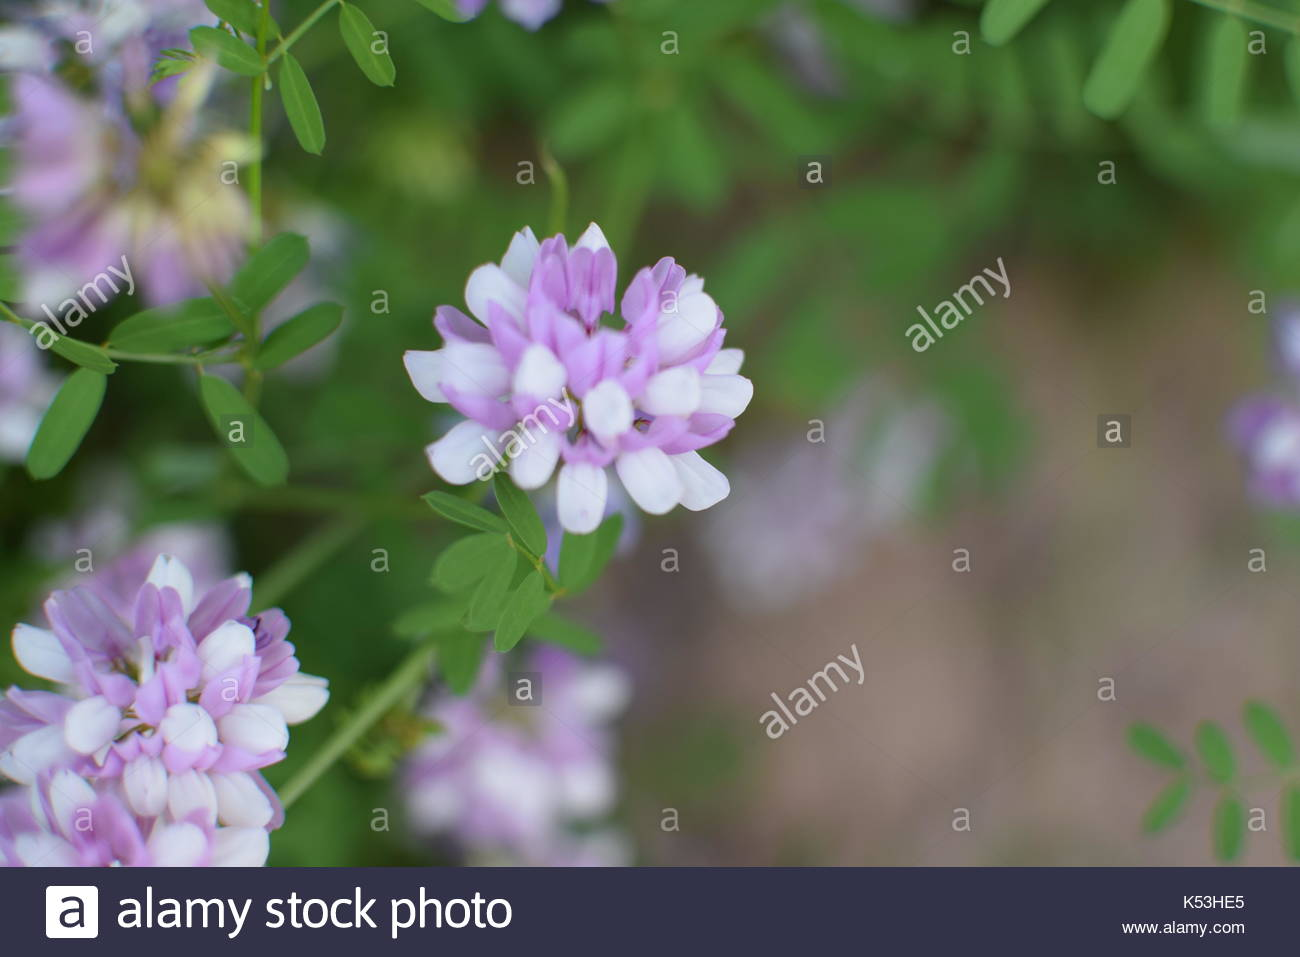 Bokeh close up of purple and white crown vetch plant flower stock bokeh close up of purple and white crown vetch plant flower izmirmasajfo